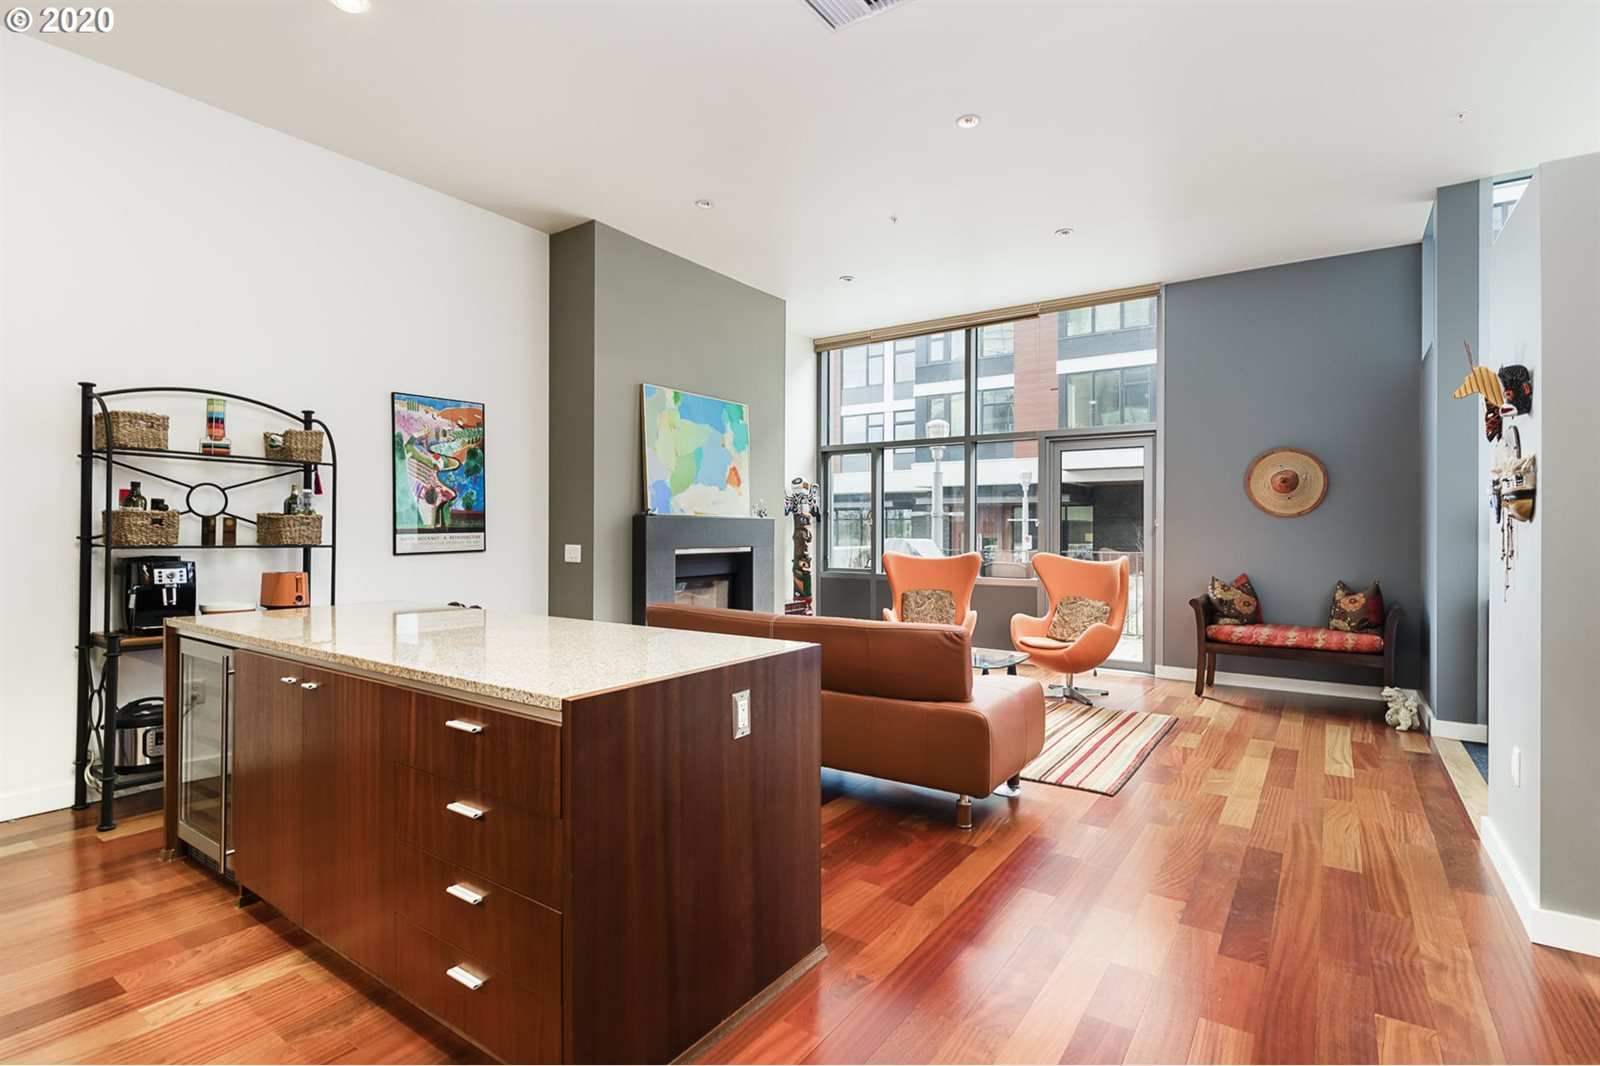 841 South Gaines St, #113, Portland, OR 97239